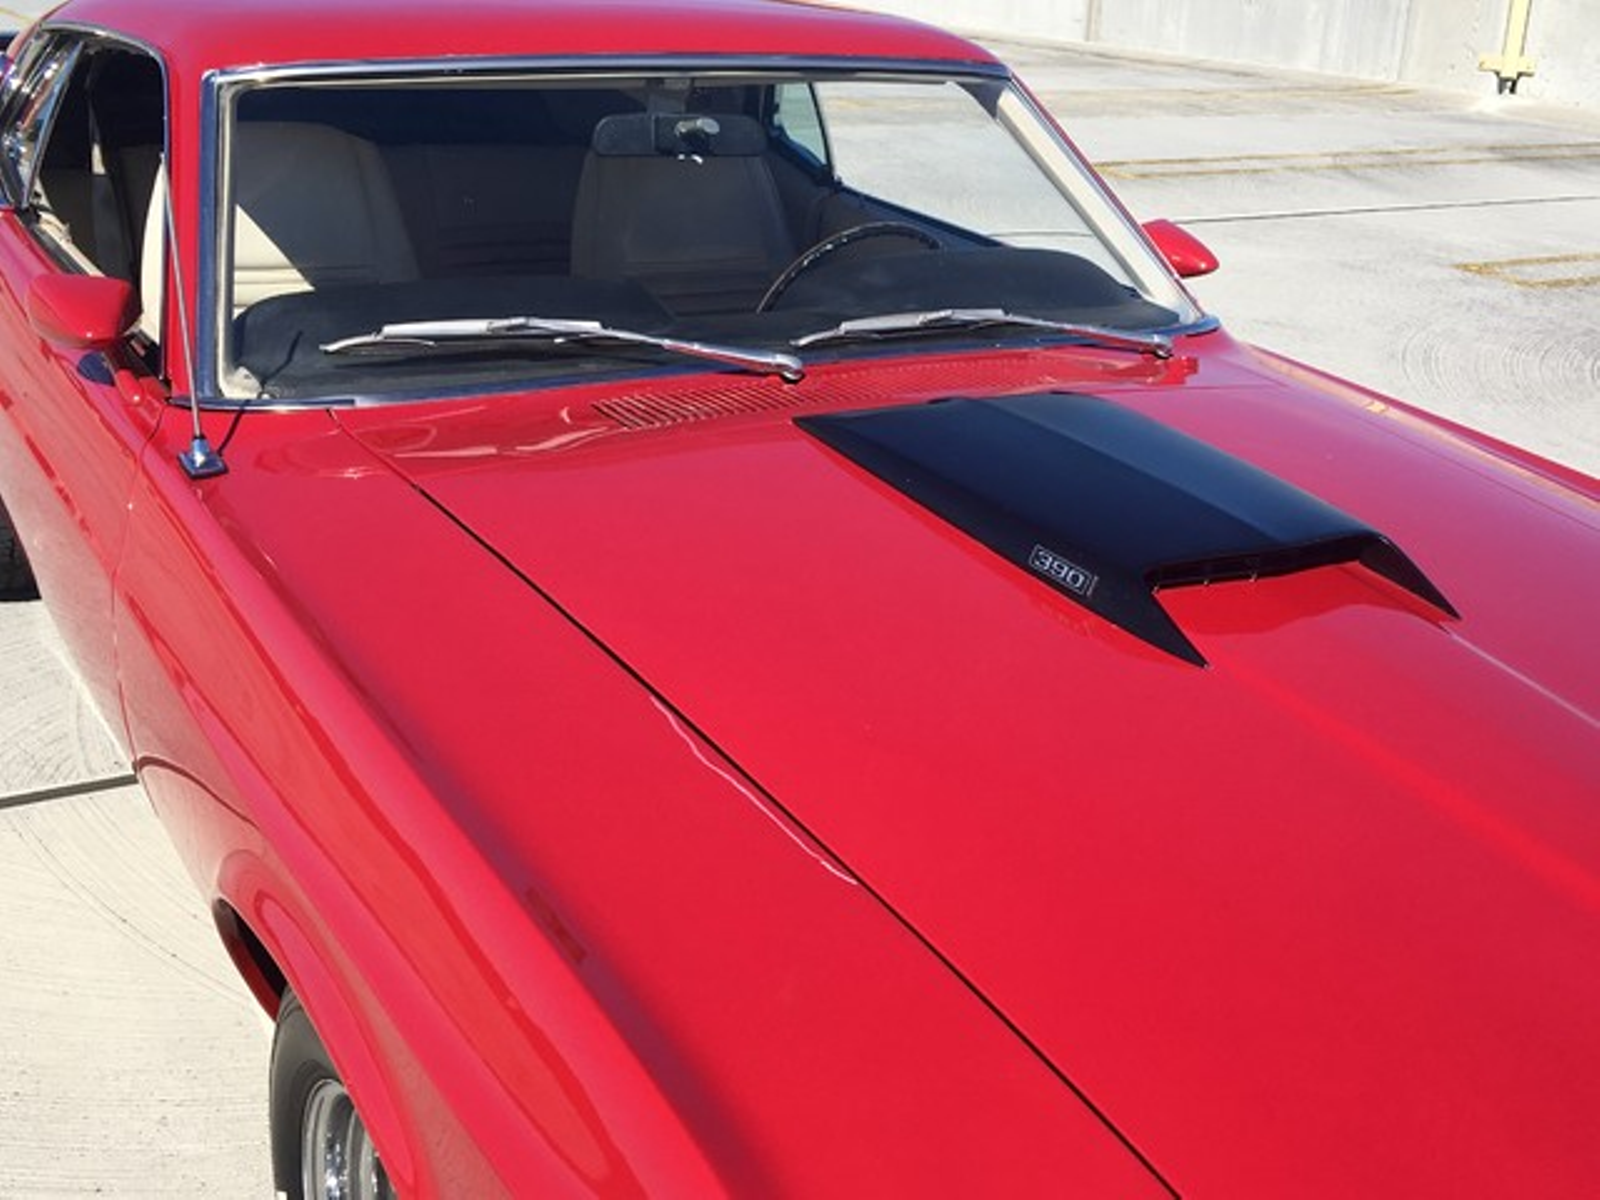 Picture of 1969 ford mustang fastback exterior -  1969 Ford Mustang Fastback Mack 1 S Code 390 In Bethel Pennsylvania